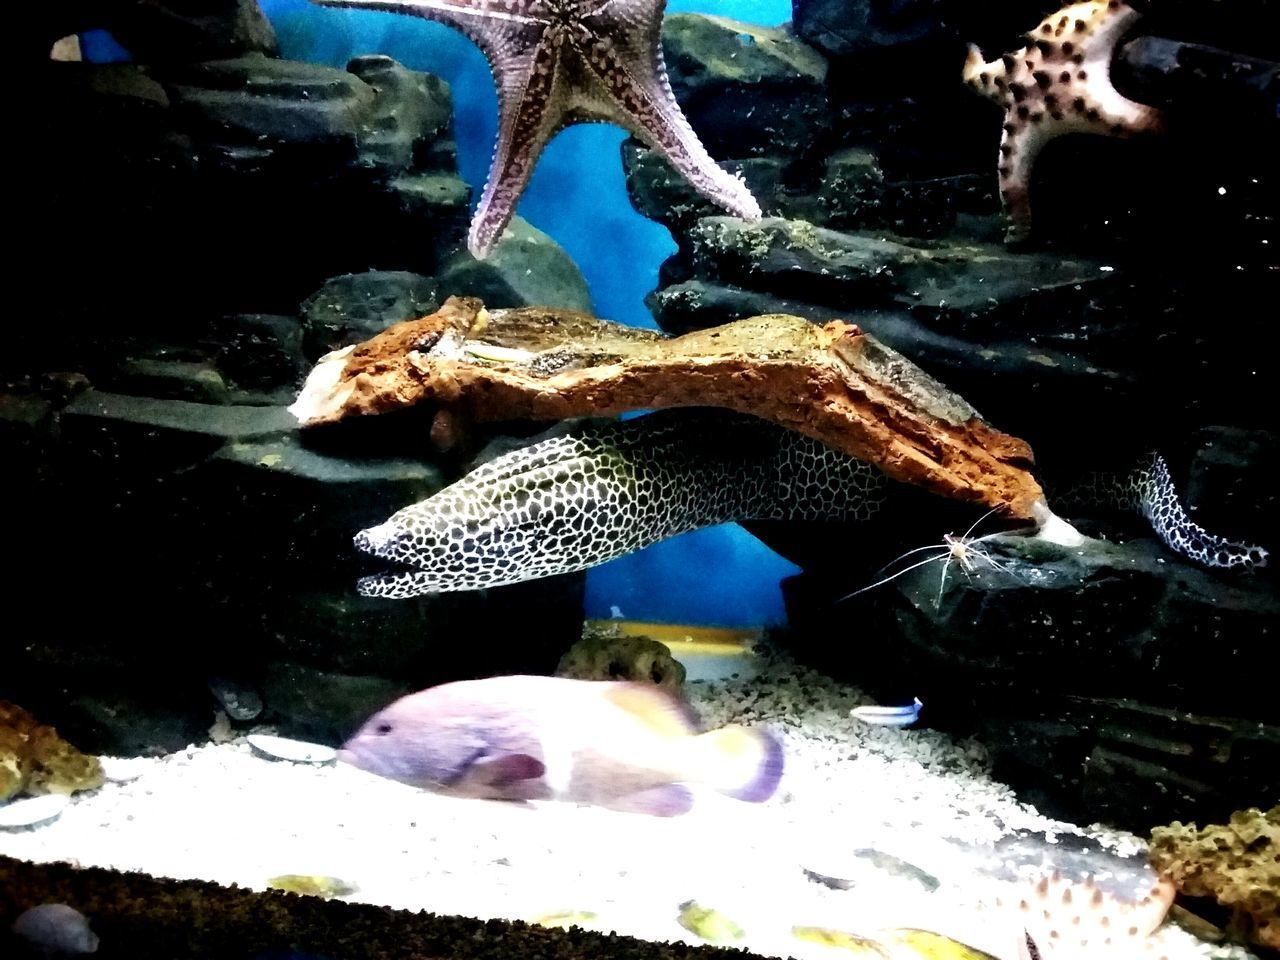 animal themes, water, underwater, sea life, animals in the wild, nature, one animal, fish, undersea, no people, animal wildlife, aquarium, beauty in nature, swimming, sea, close-up, day, outdoors